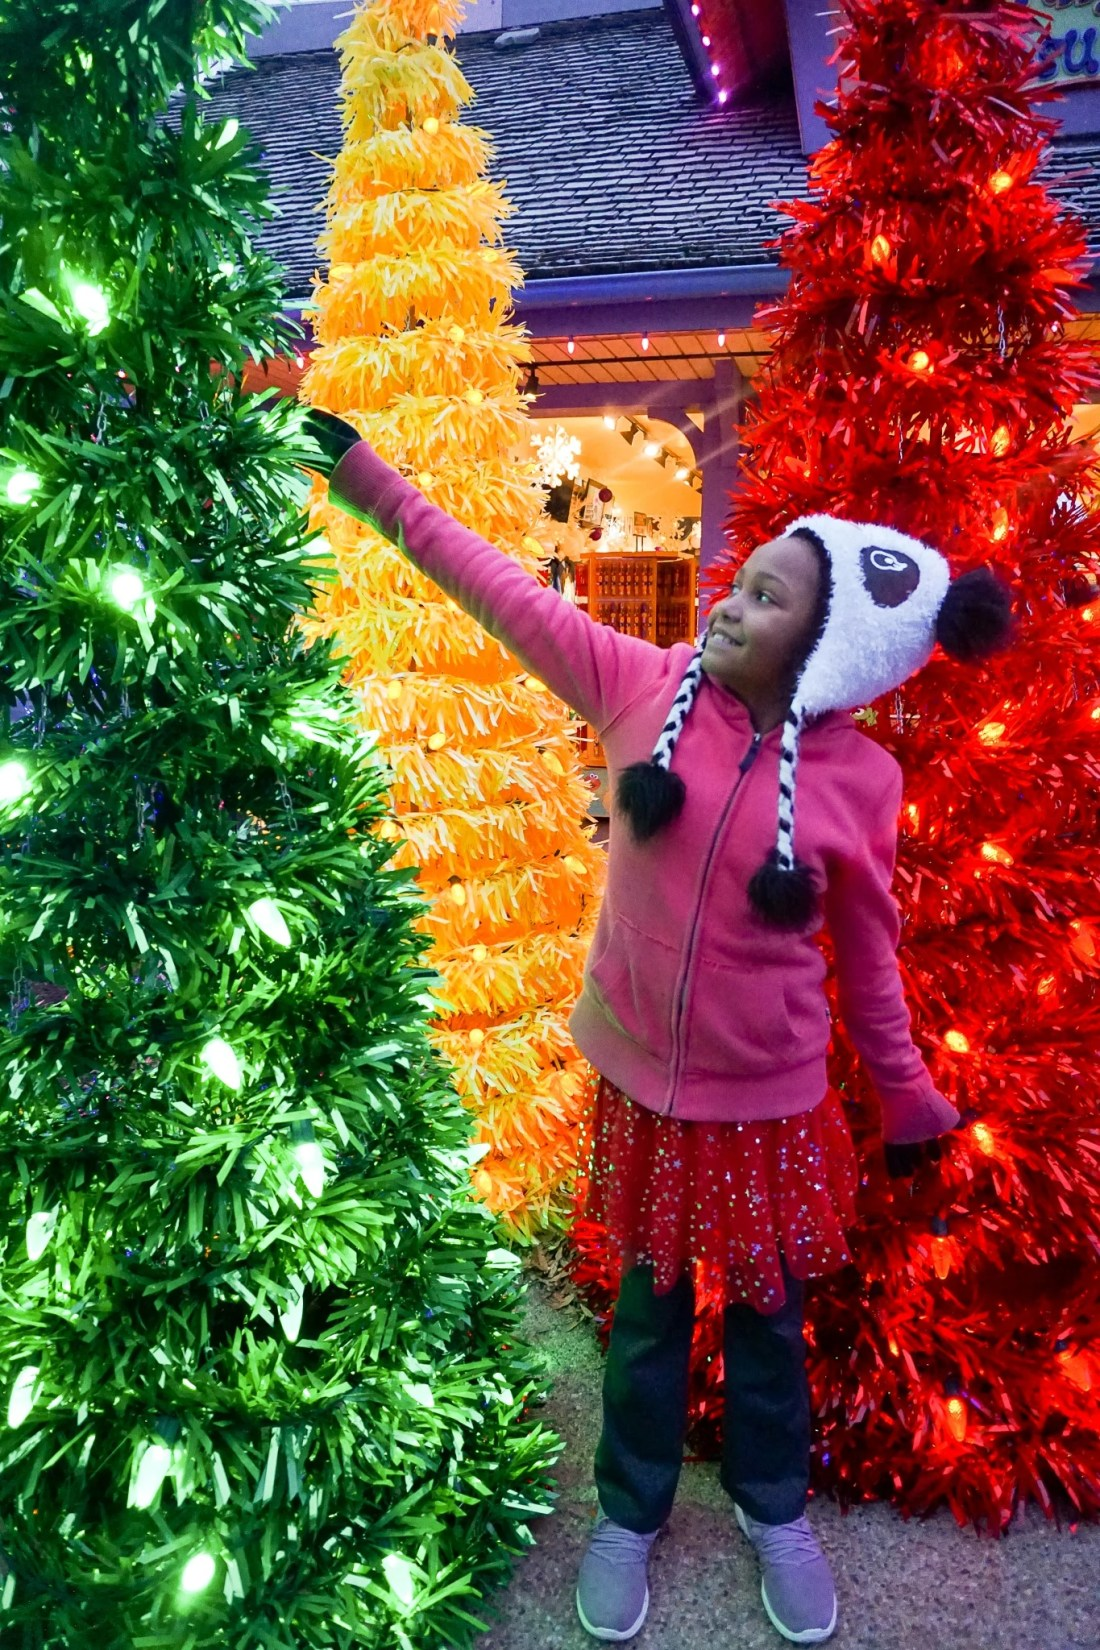 Elmos World Chritsmas Trees 15 Instagram Worthy Walls Christmas Town Busch Gardens. Instagram Worthy Walls and Locations around Busch Gardens Christmas Town in Williamsburg Virginia.